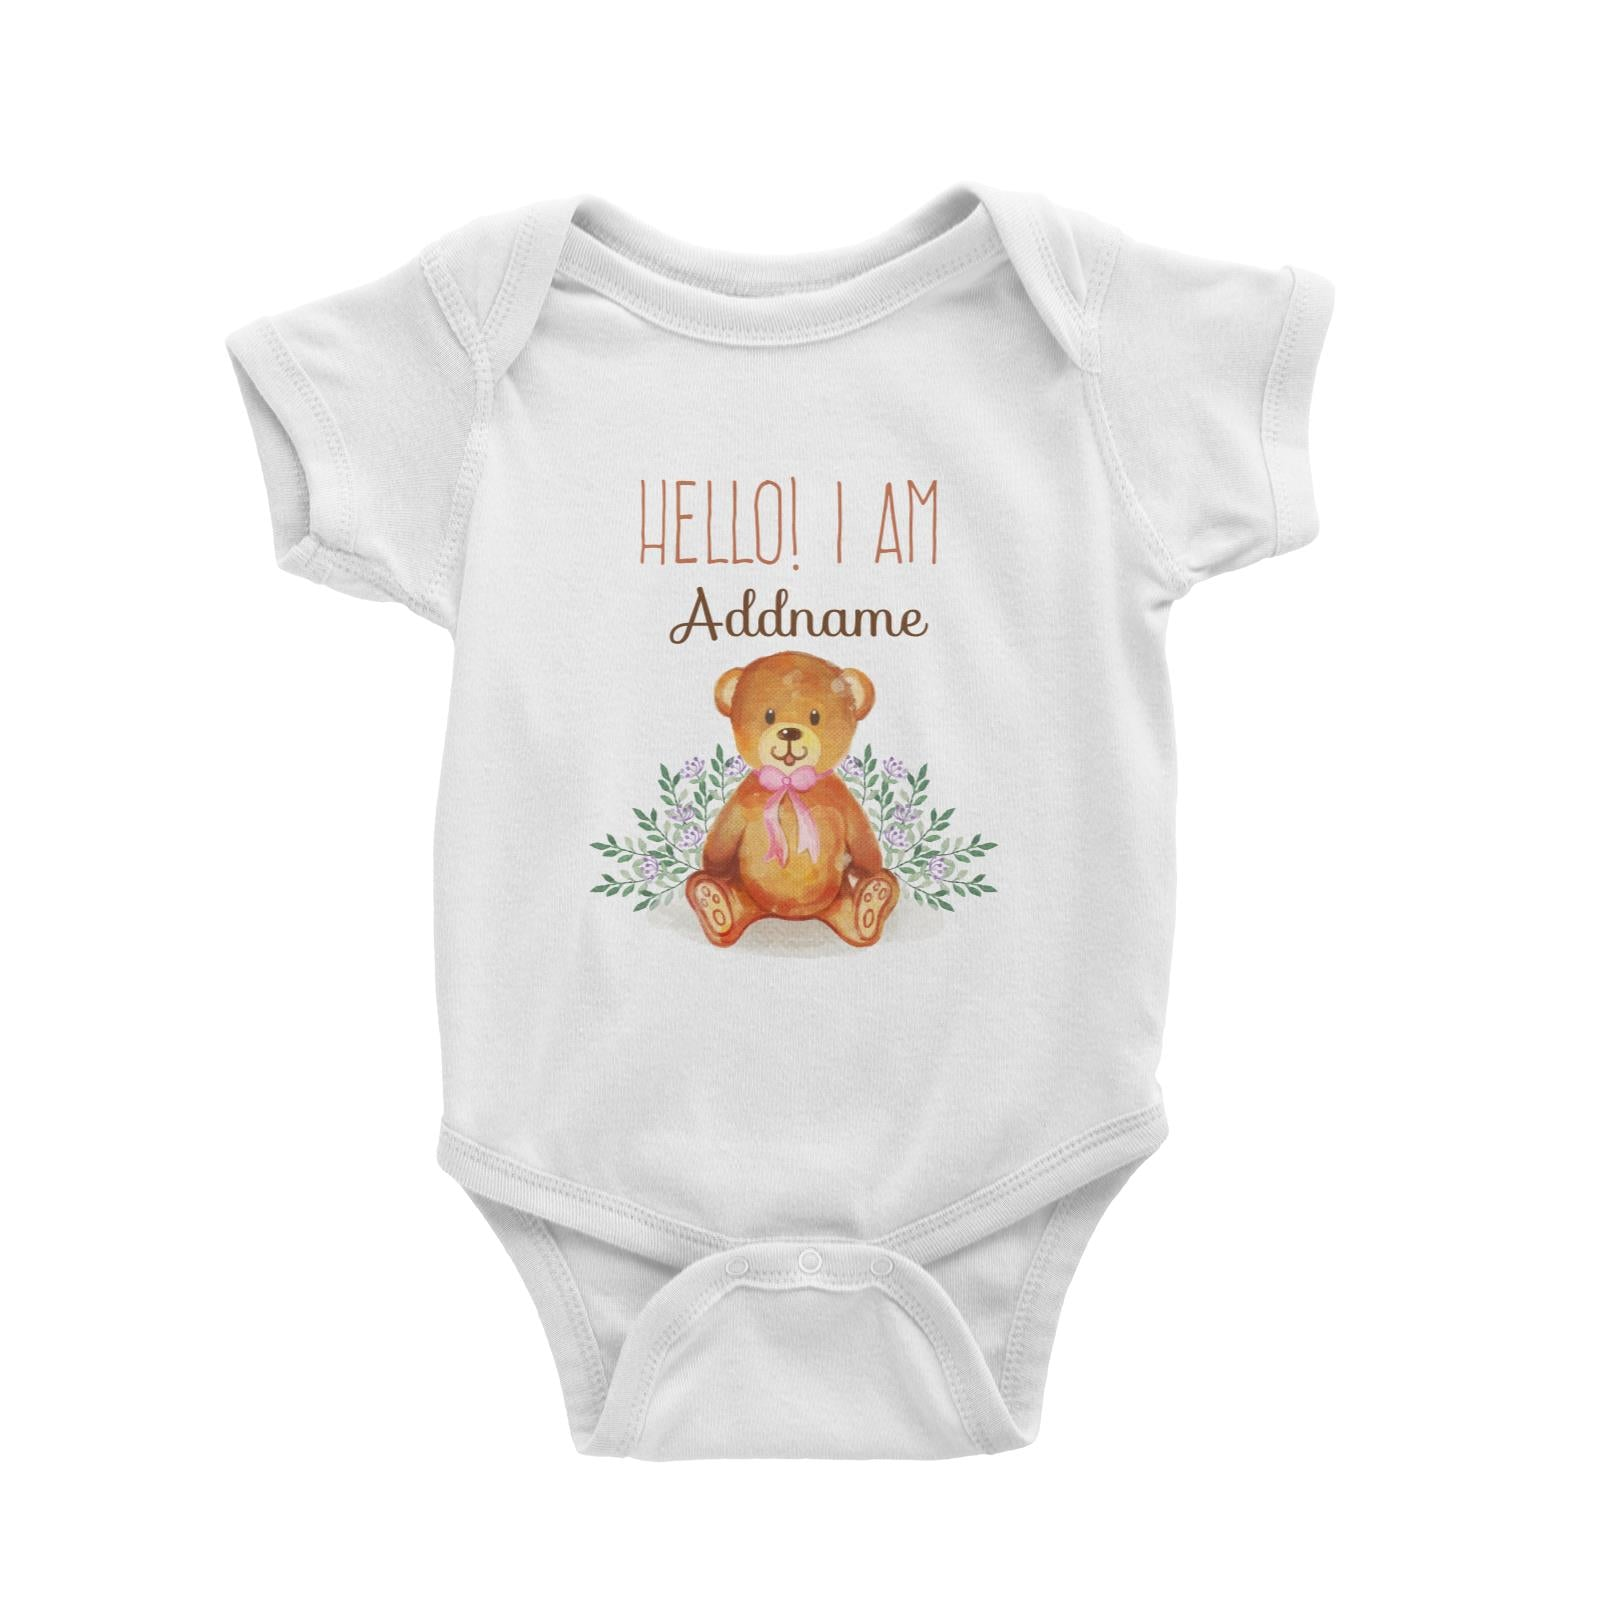 Hello I am Addname with Cuddly Bear Baby Romper Personalizable Designs Basic Newborn